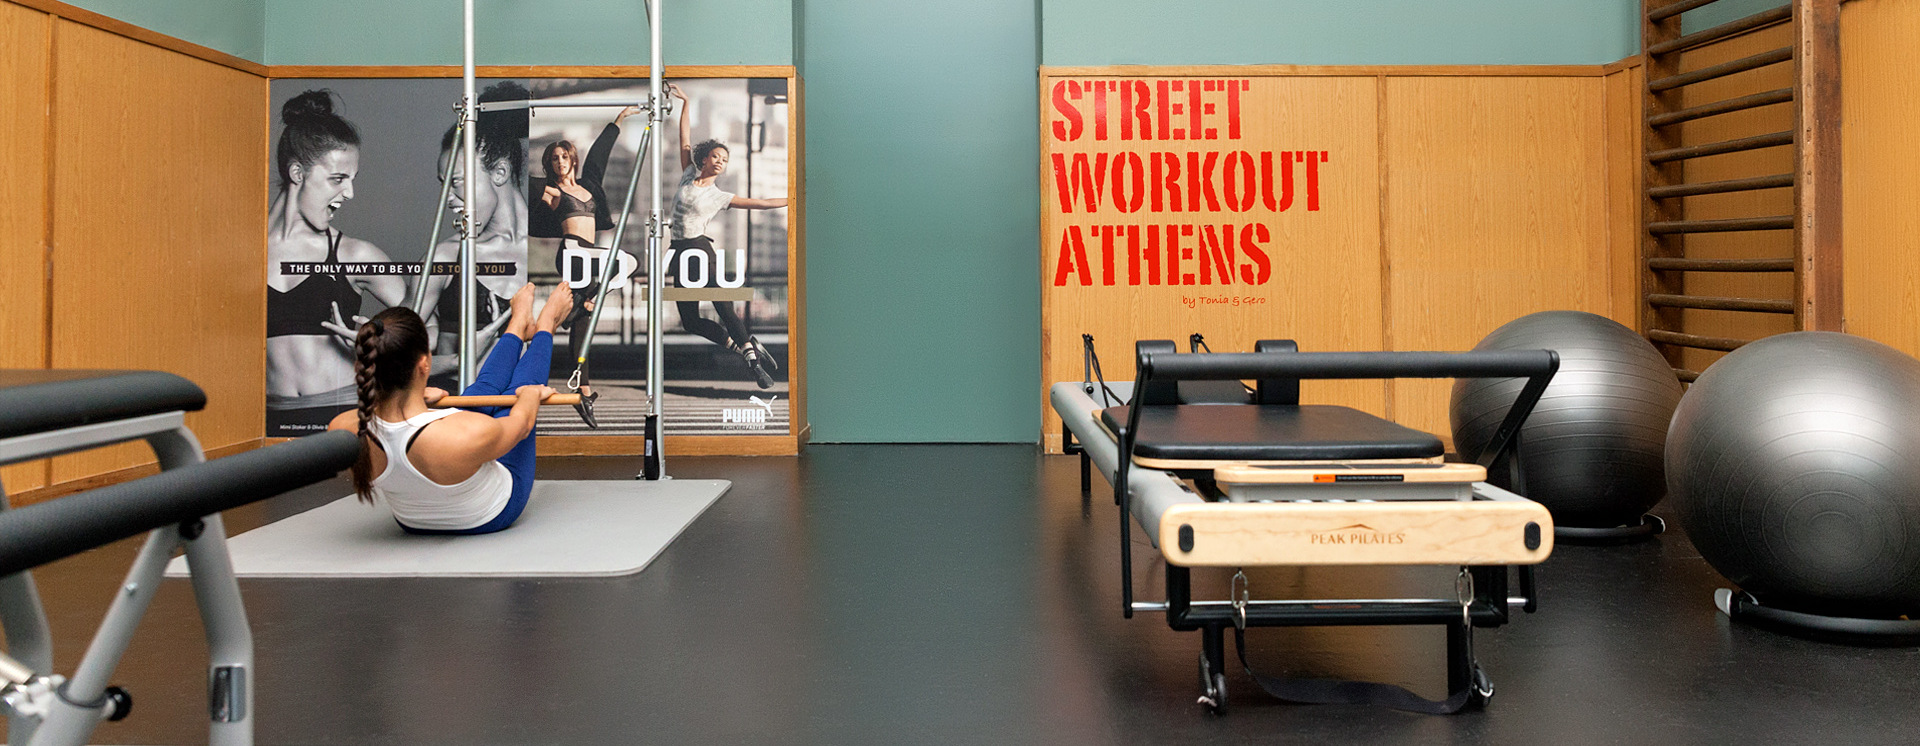 Pilates in Athens